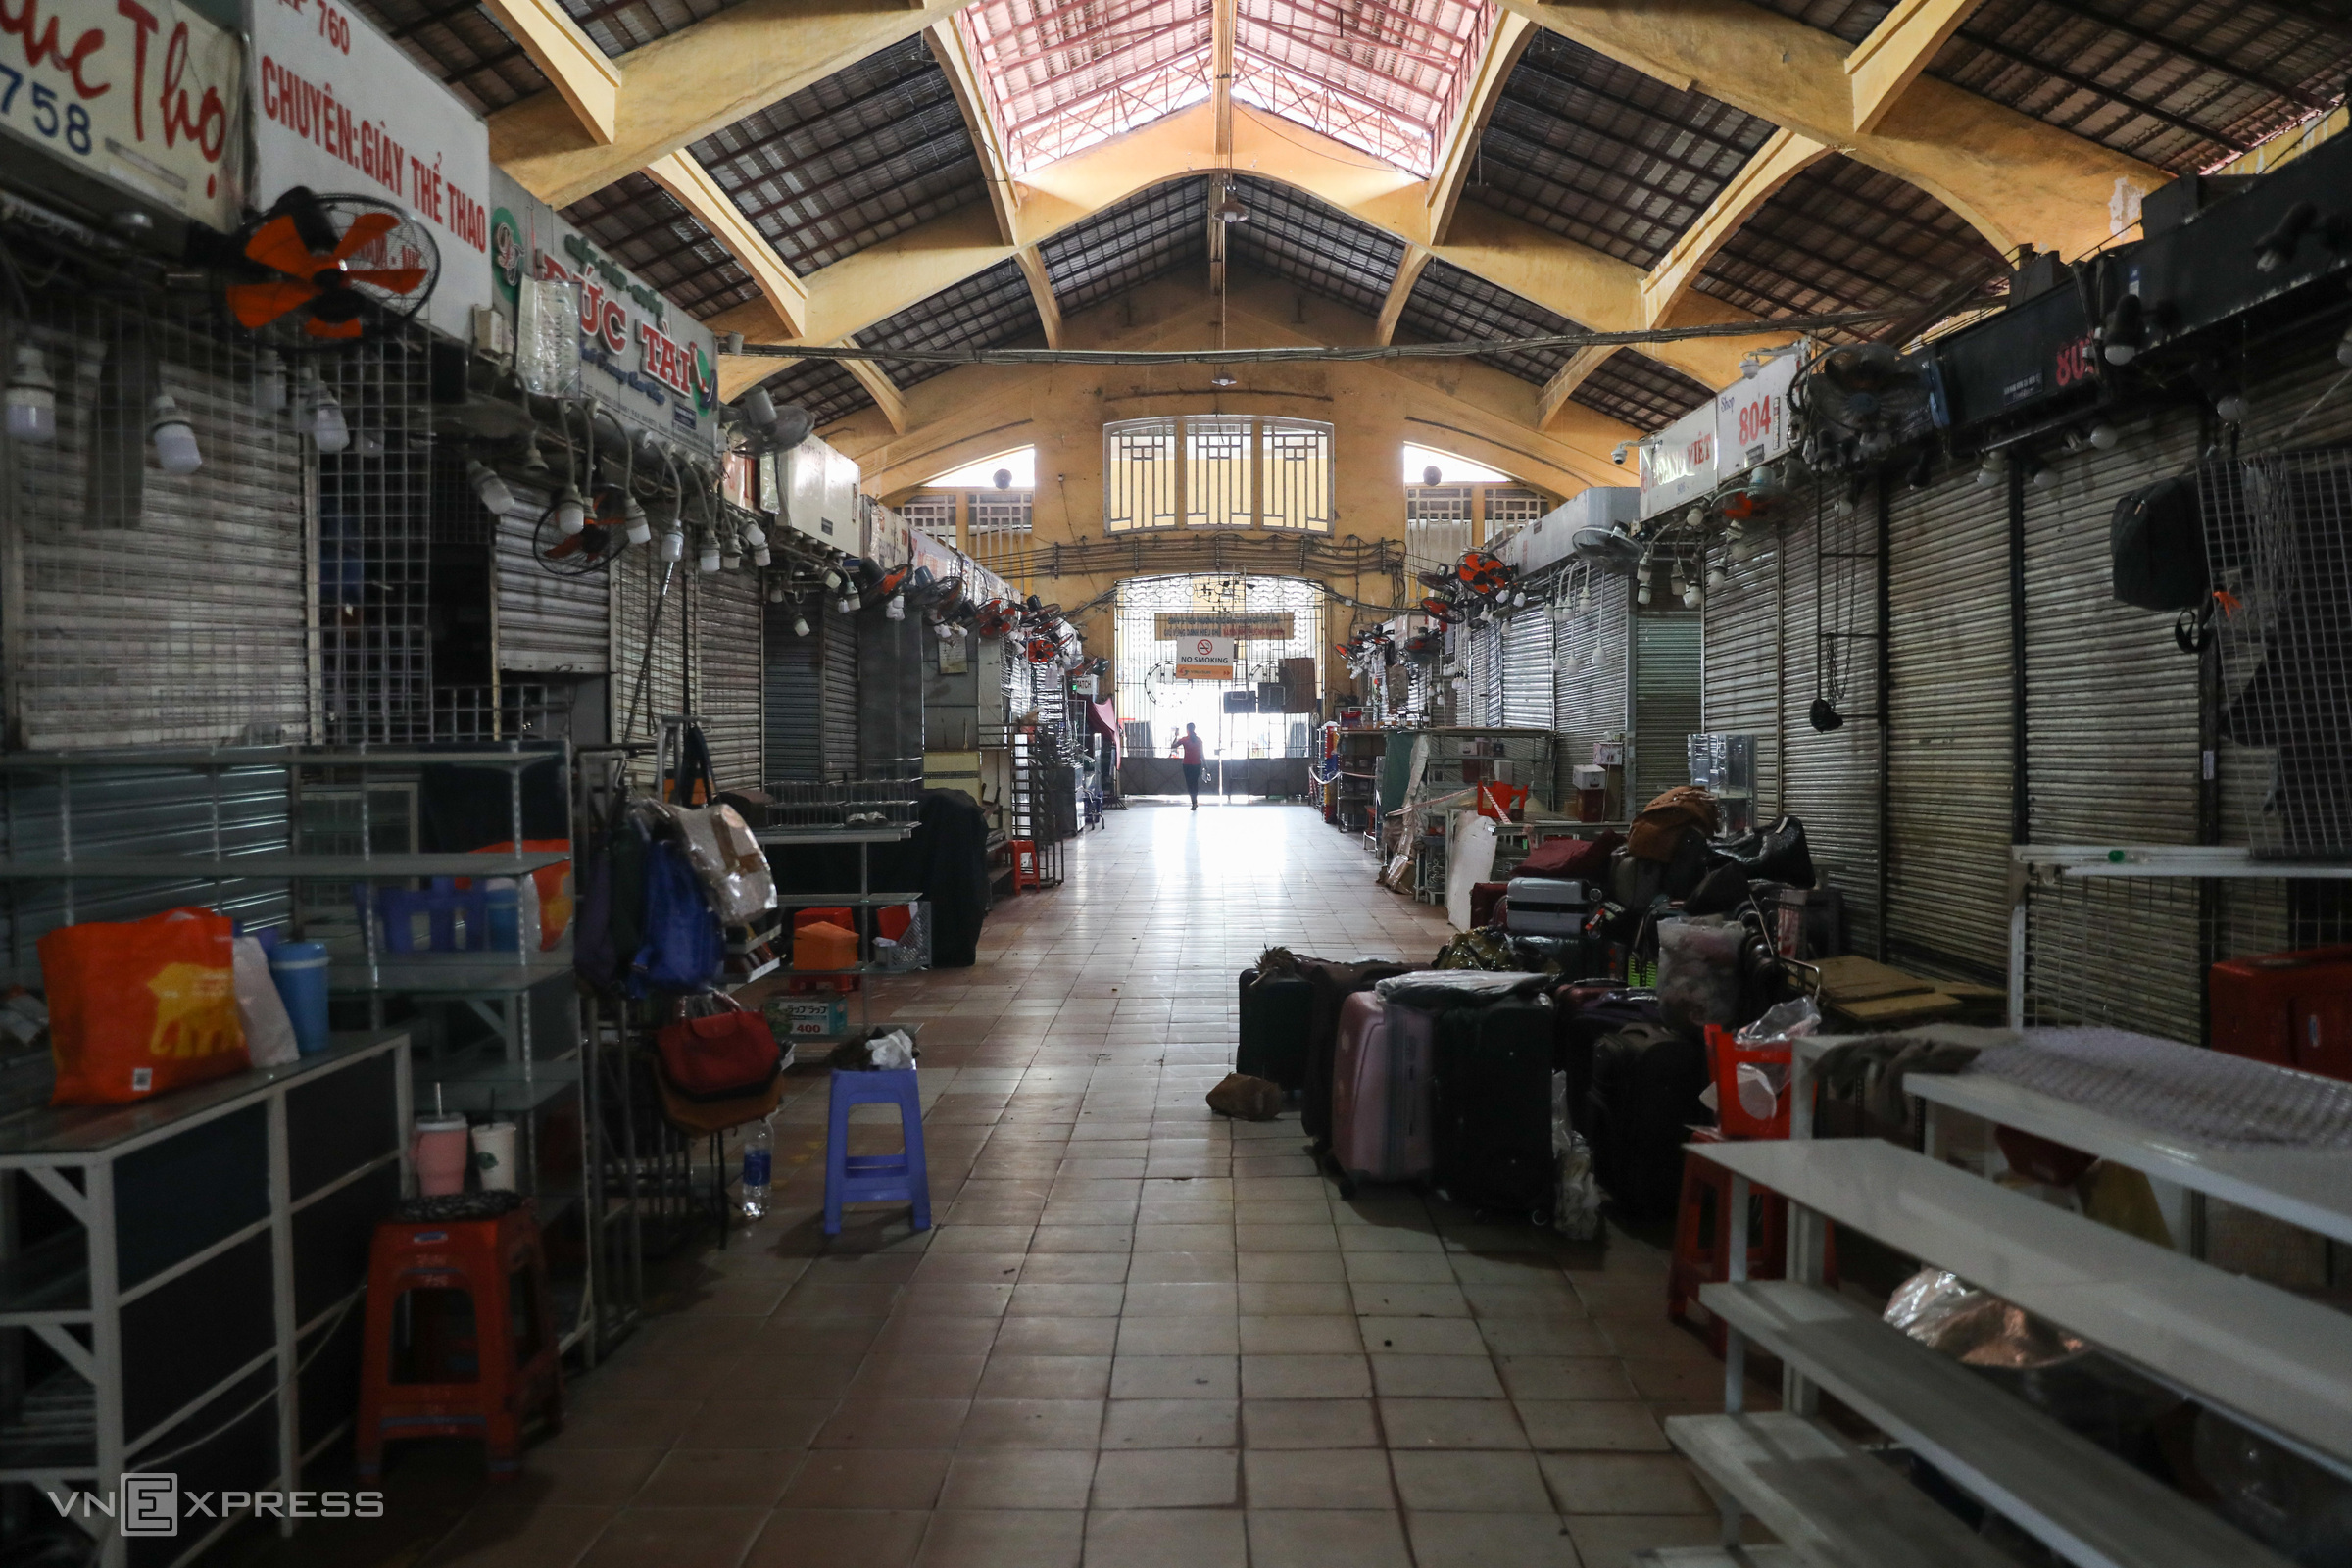 HCMC traditional markets reopen cautiously